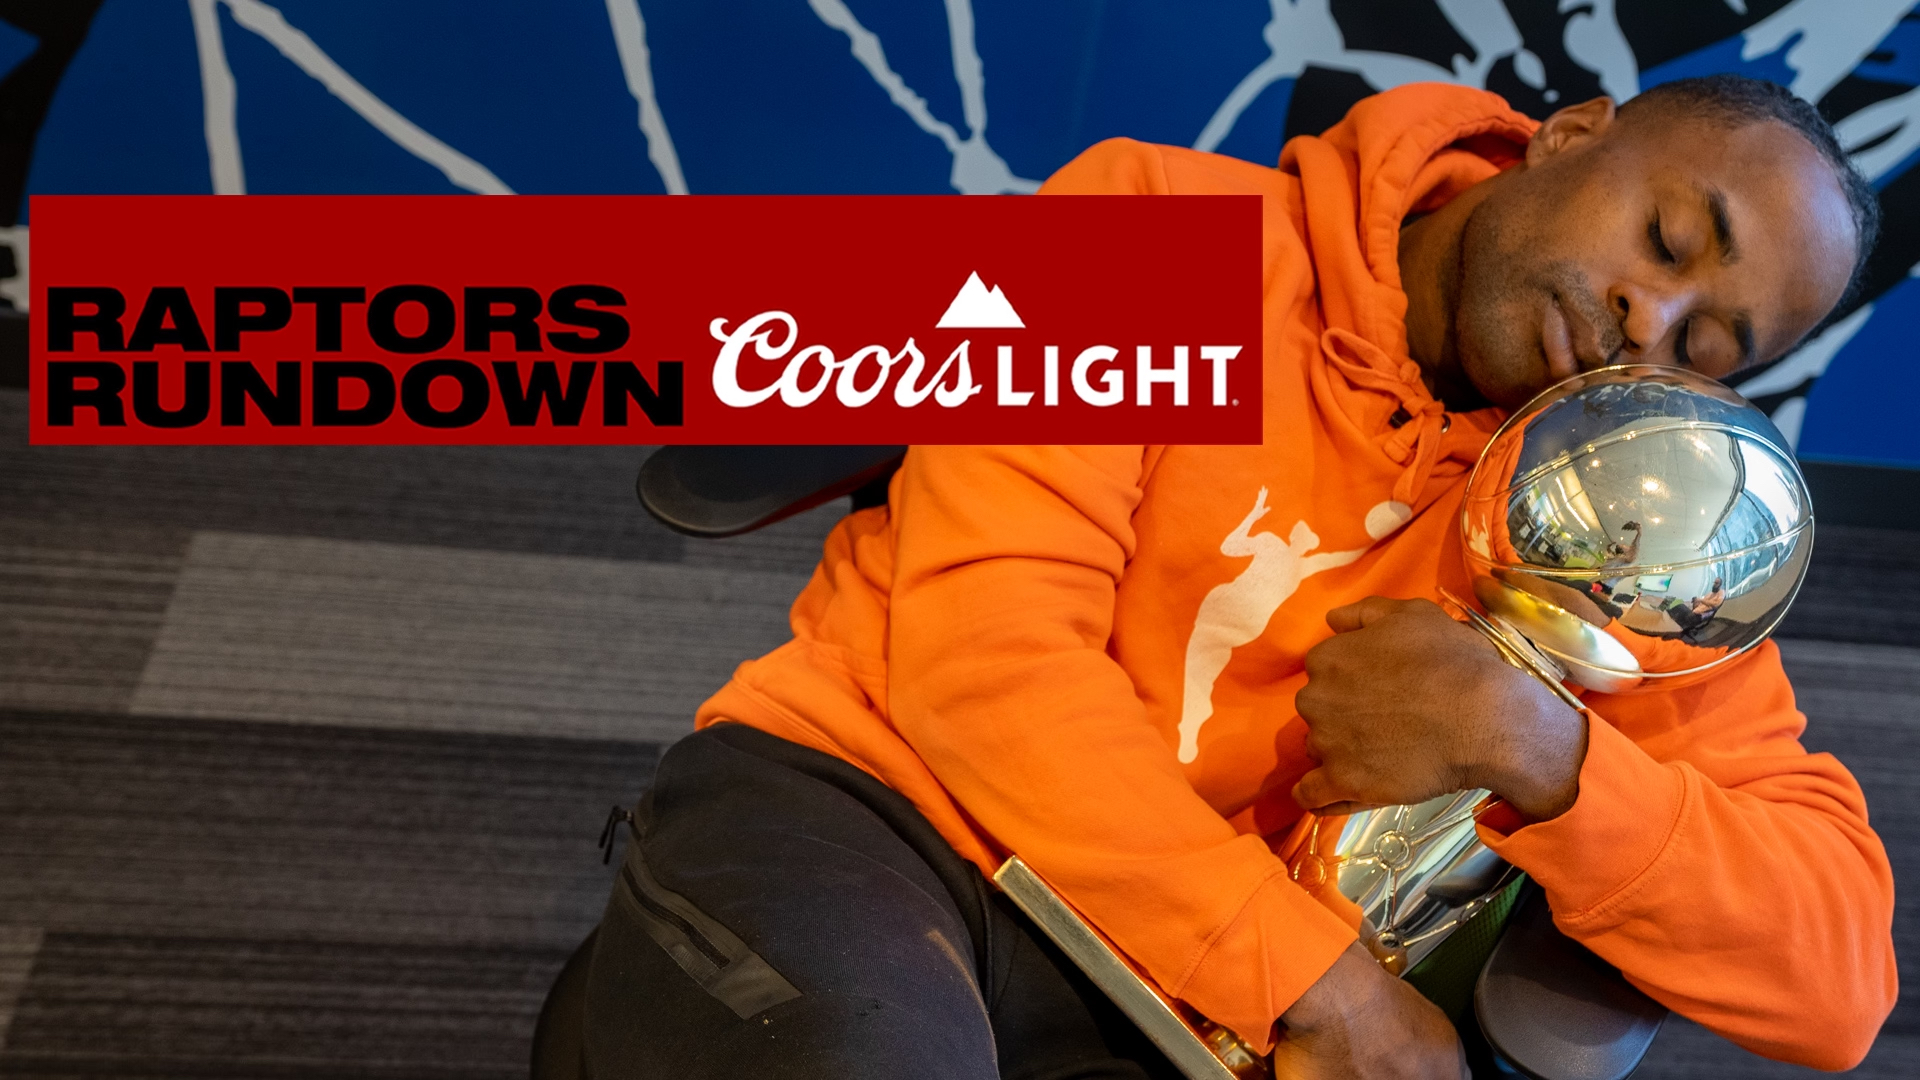 Gary Trent Jr's favorite new Jersey  | Raptors Rundown pres. by Coors Light